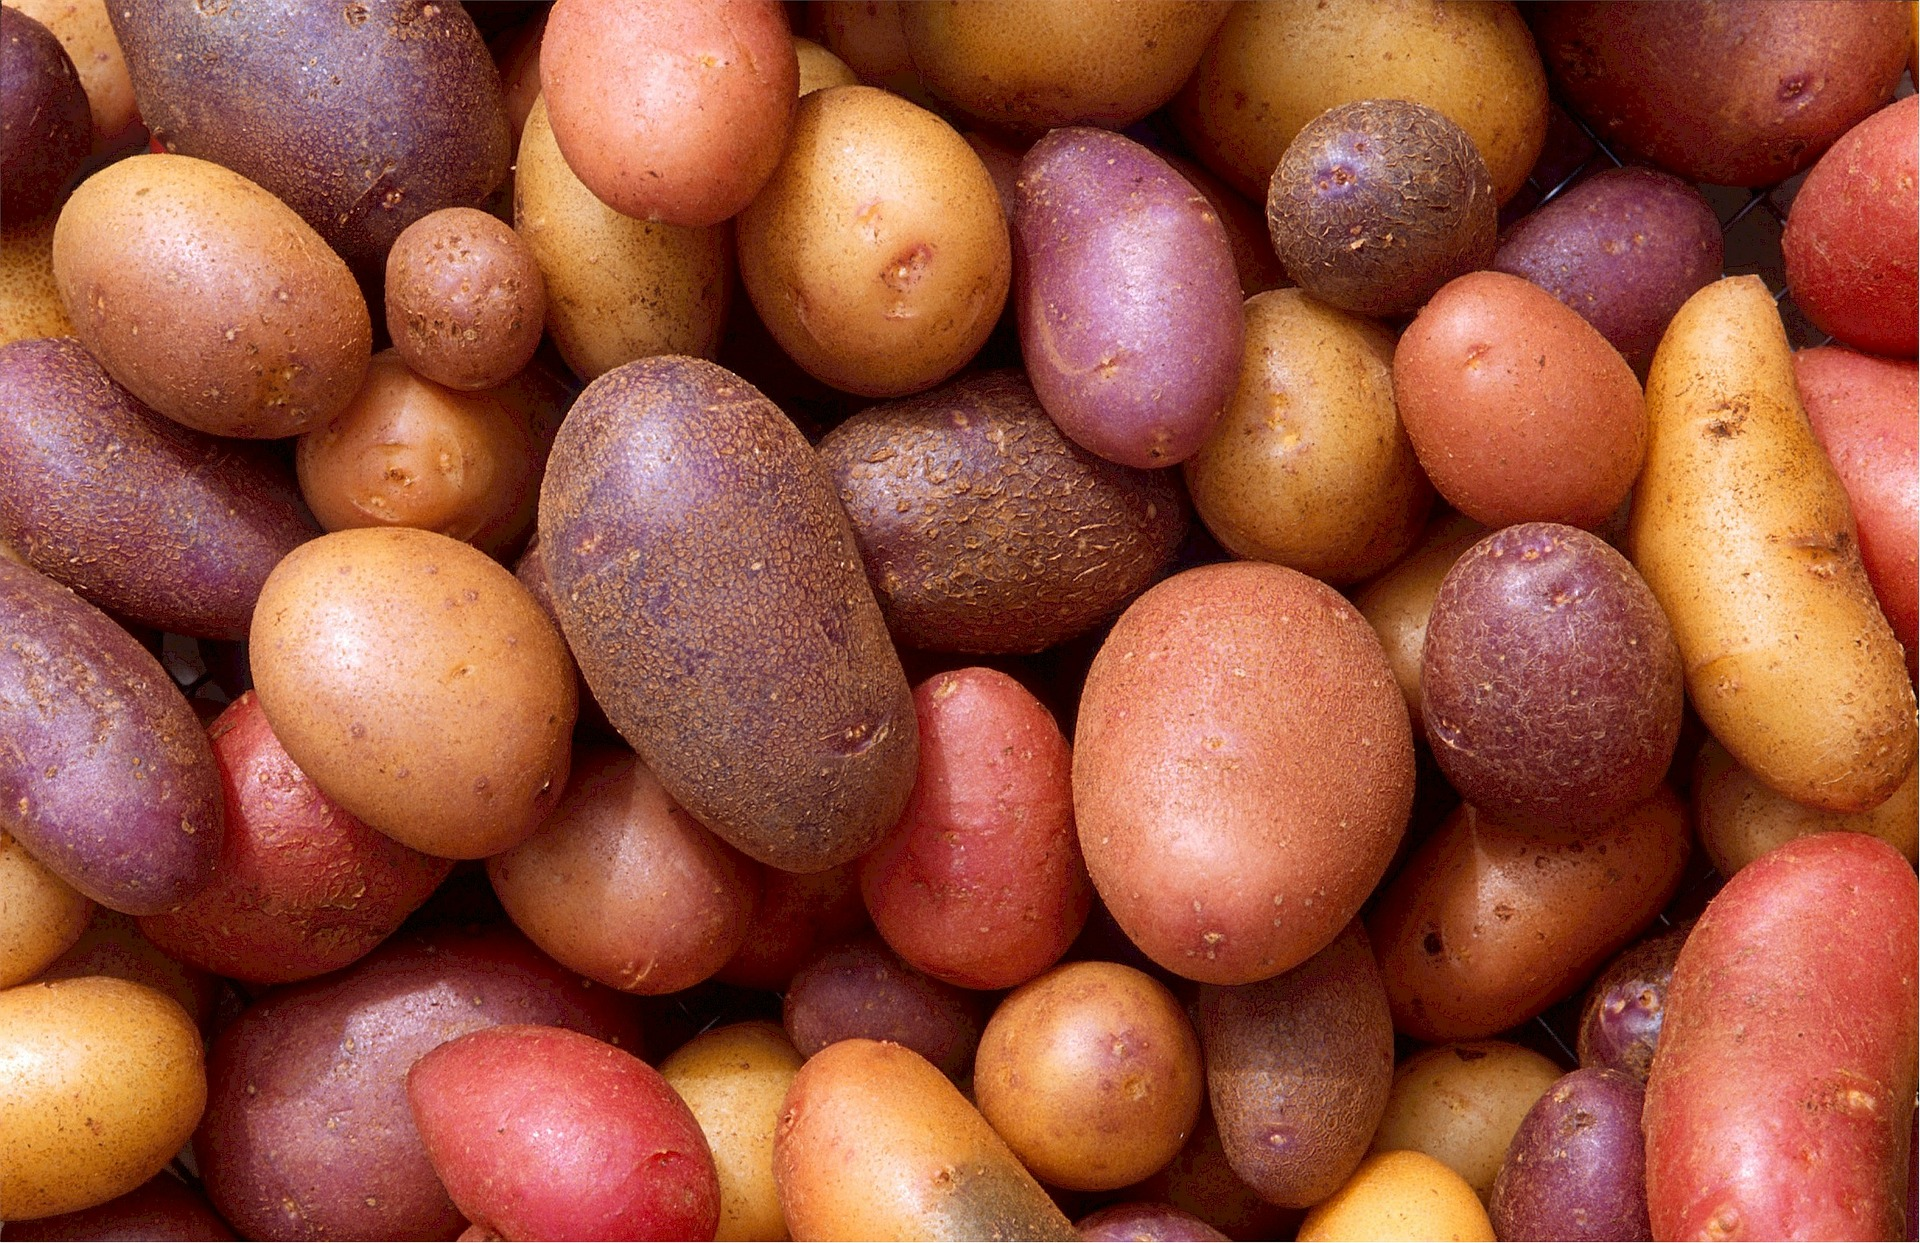 potatoes-522486_1920